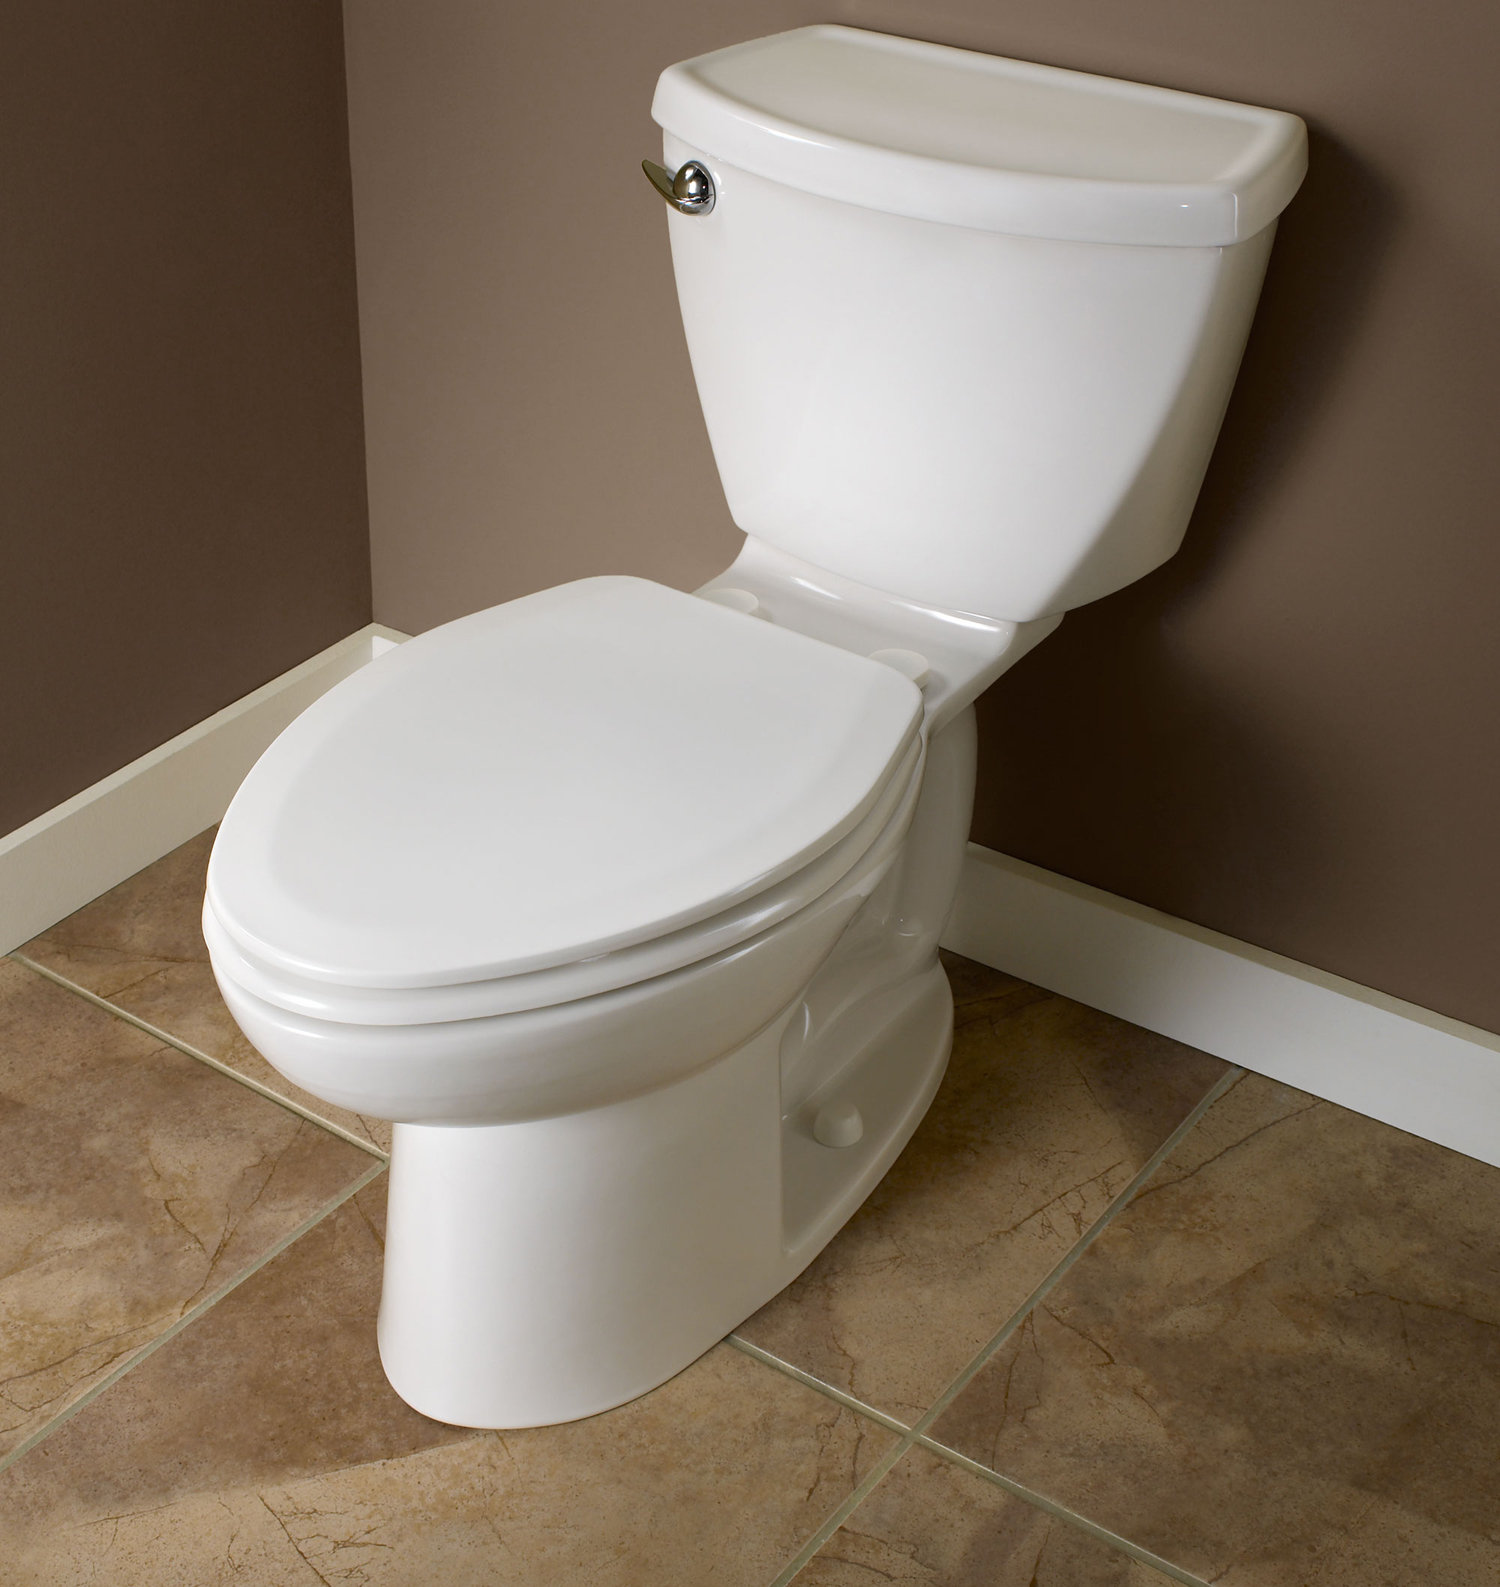 American Standard 5321 110 020 Everclean Elongated Toilet